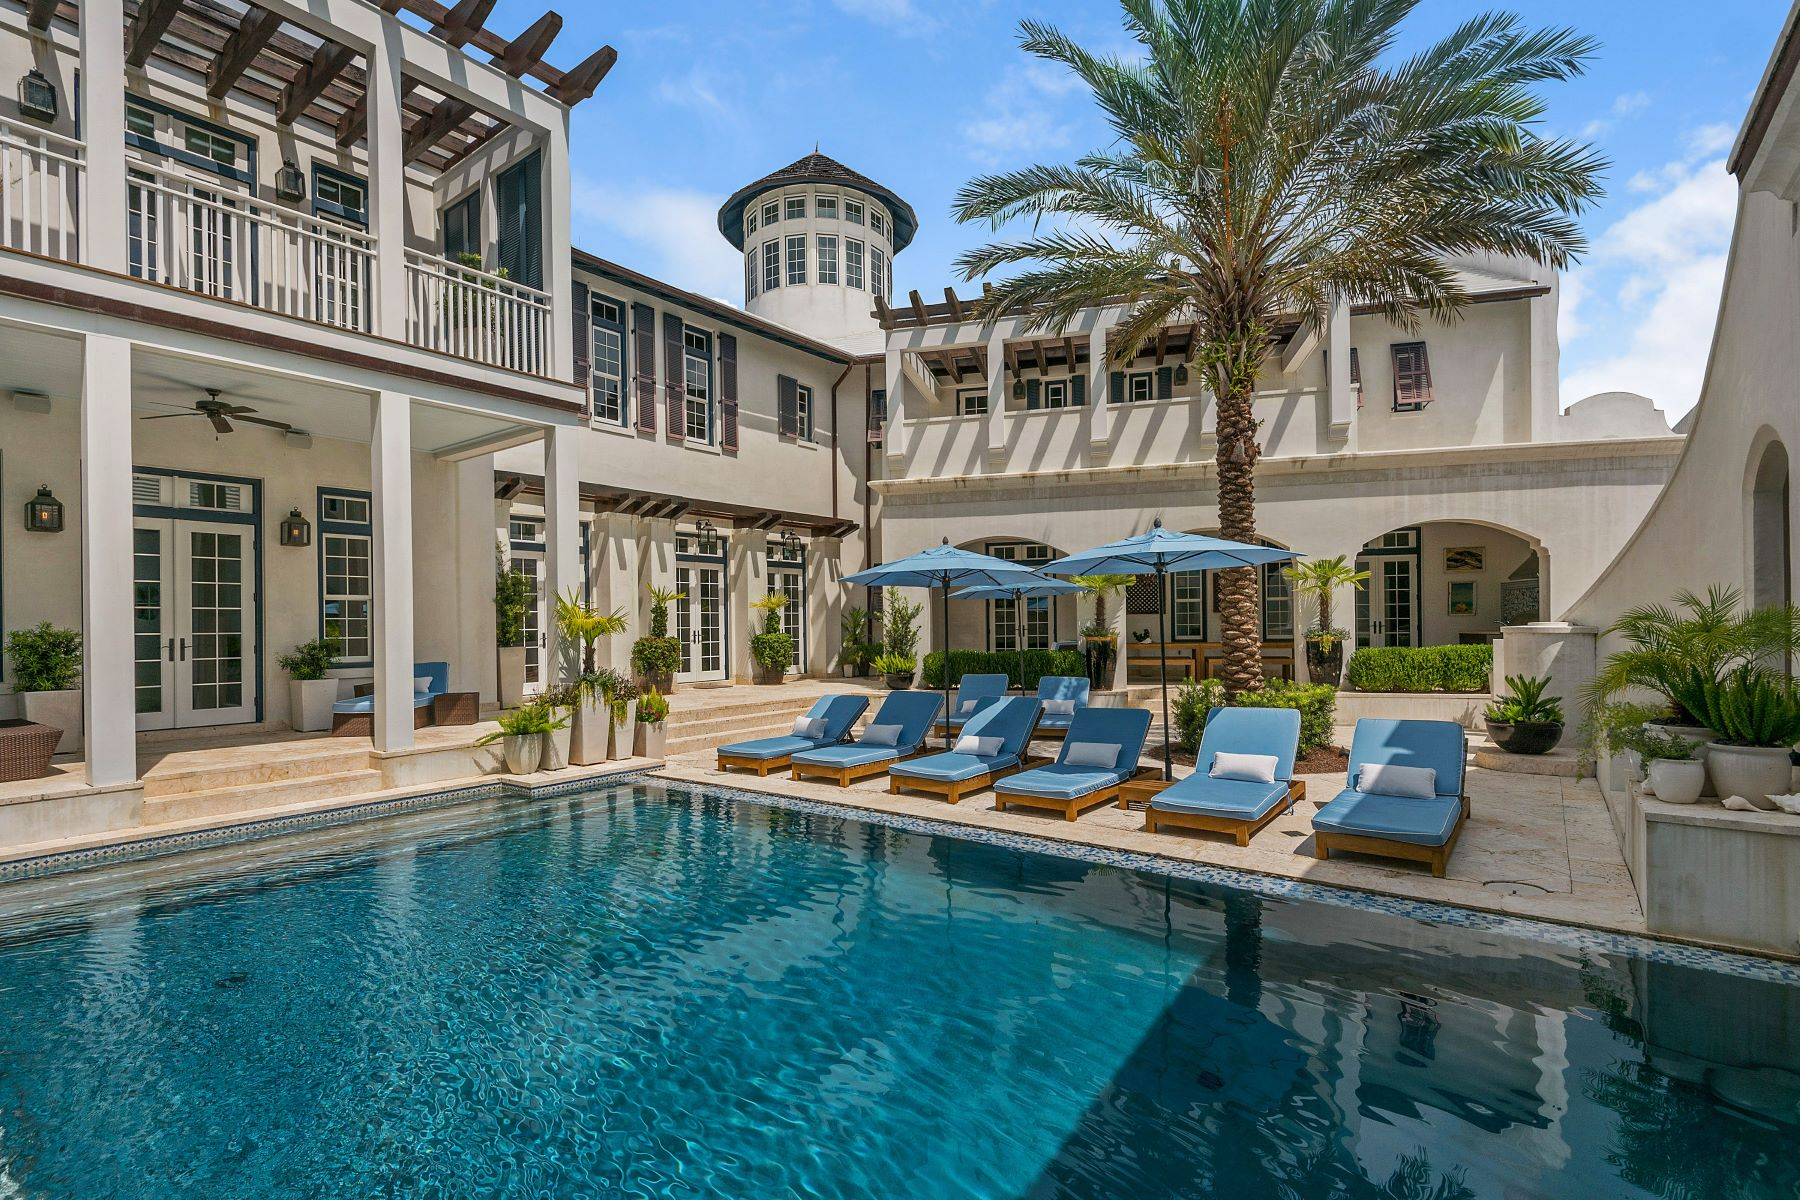 Single Family Home for Sale at ASPRI VILLA AT THE EXCLUSIVE ALYS BEACH 140 N Charles Street Alys Beach, Florida, 32461 United States